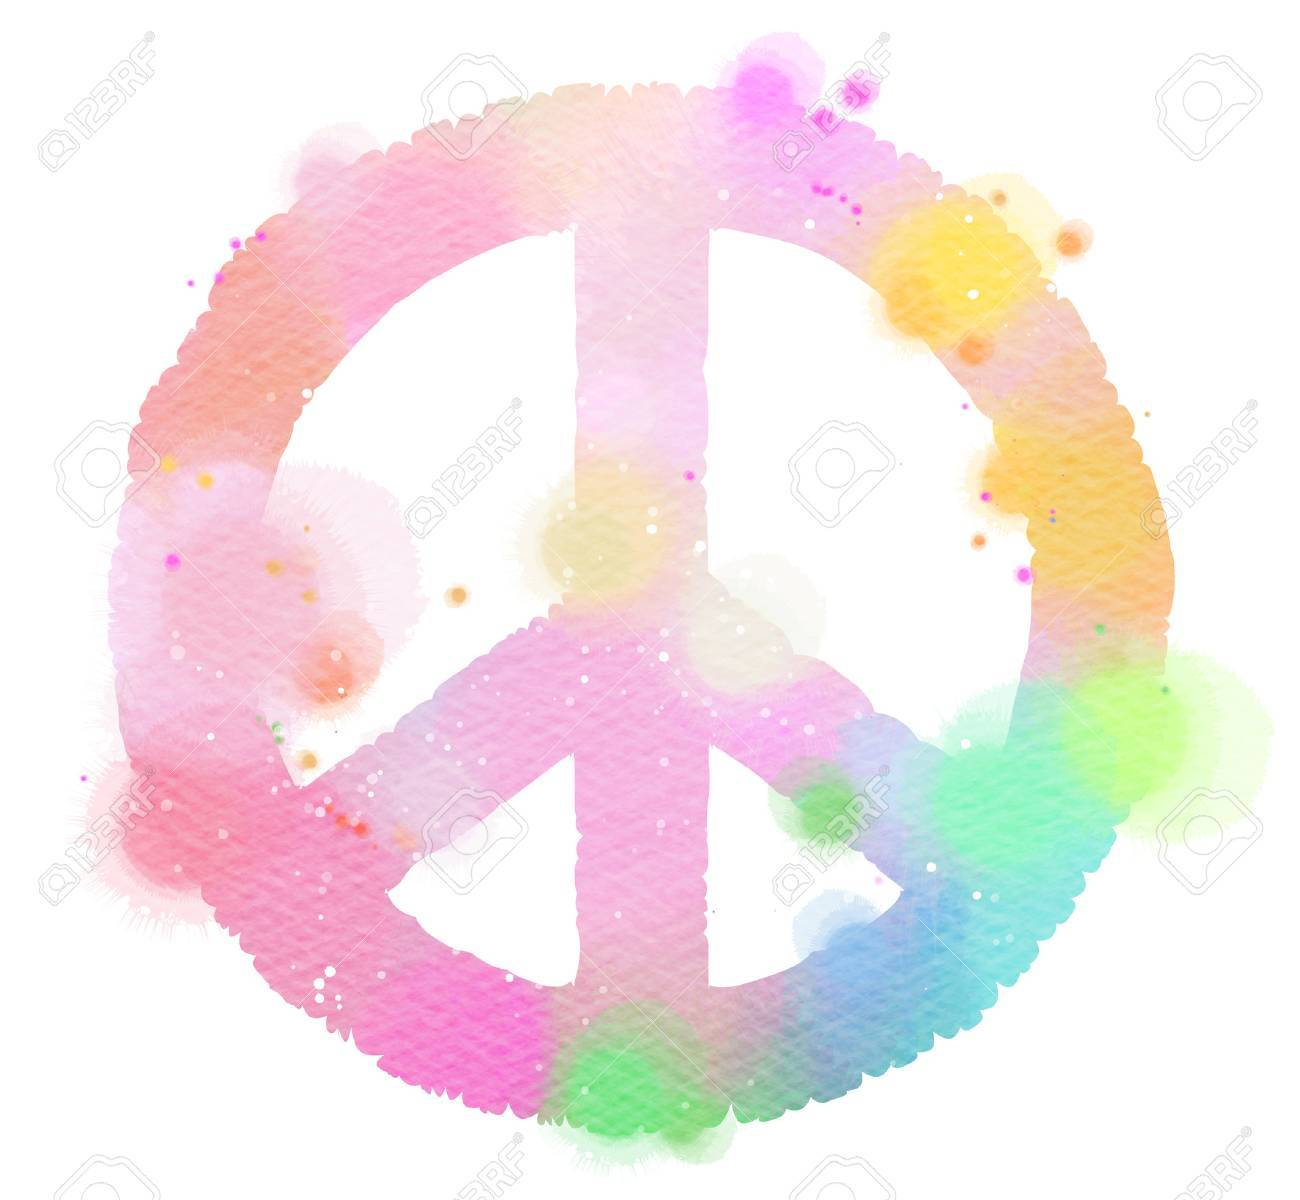 Watercolor Peace Symbol Digital Art Painting Stock Photo Picture